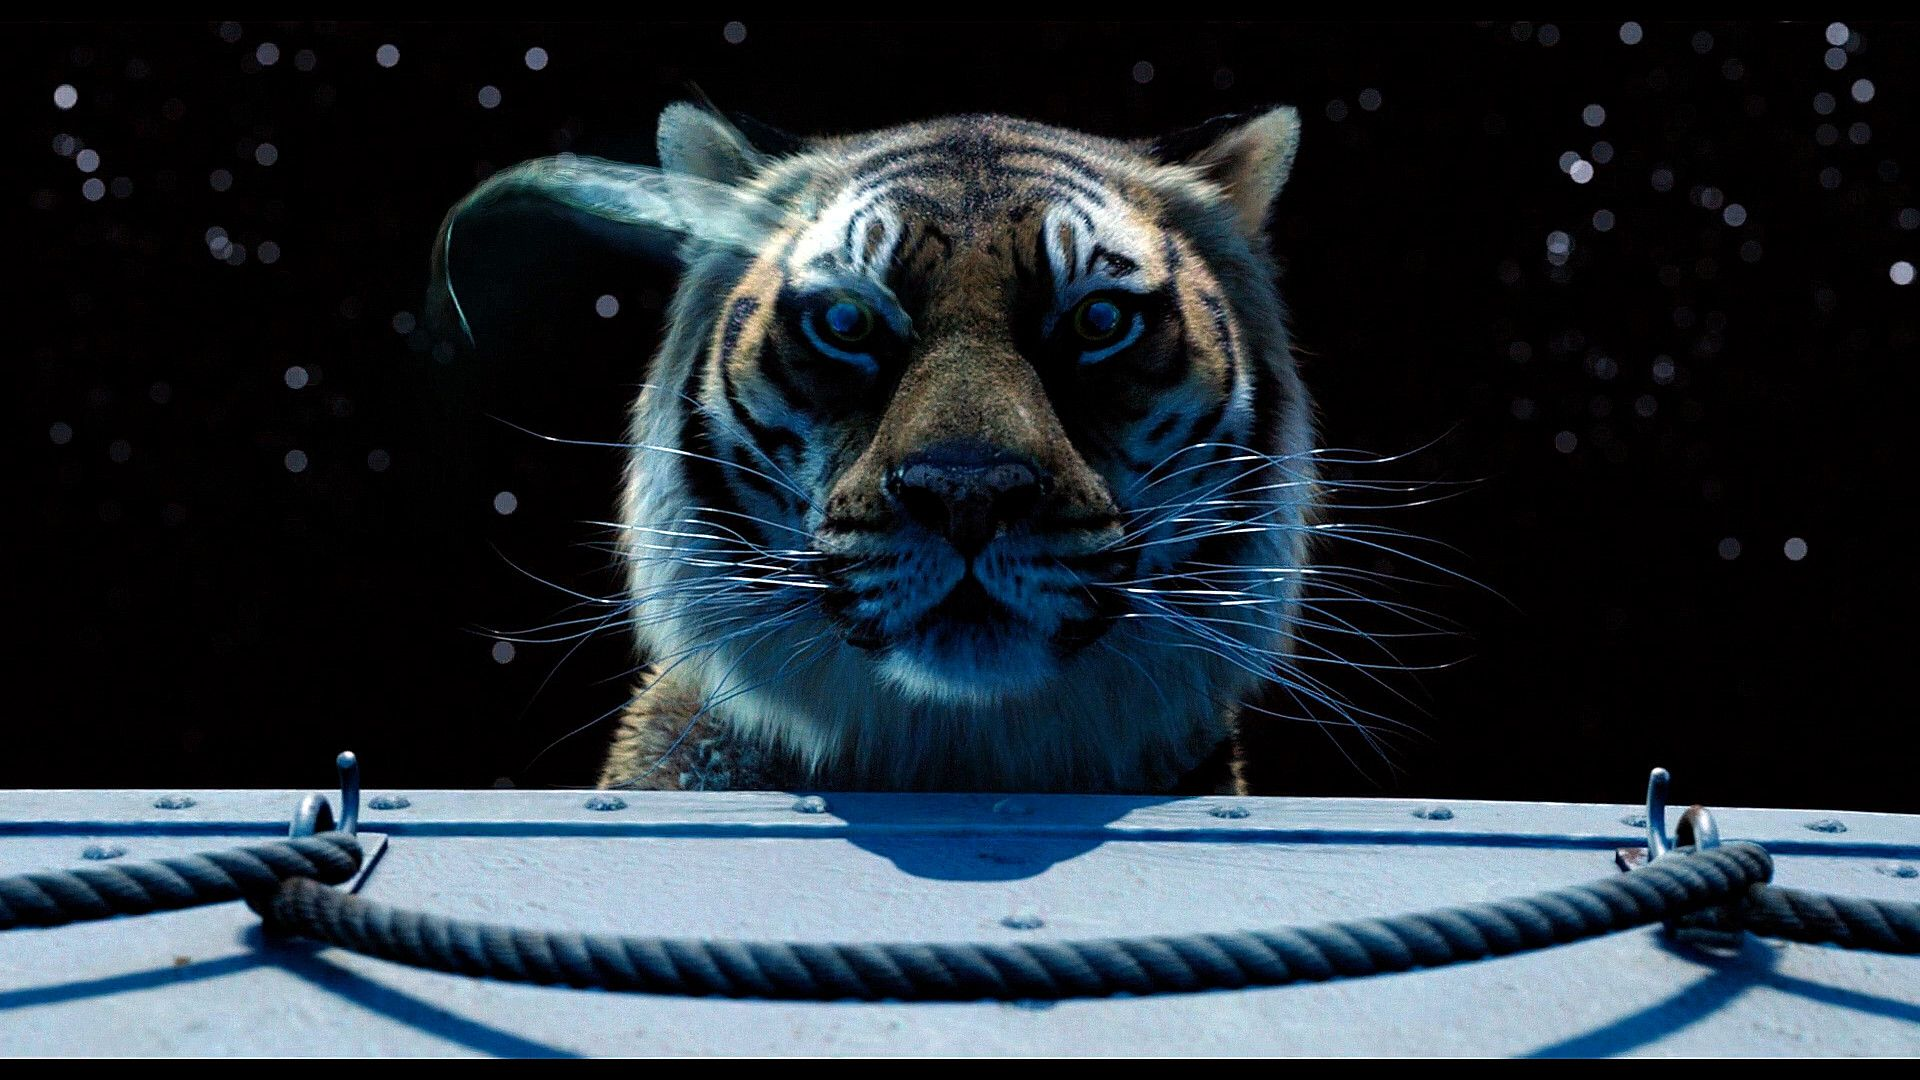 richard parker life of pi inspire me oscar richard parker life of pi